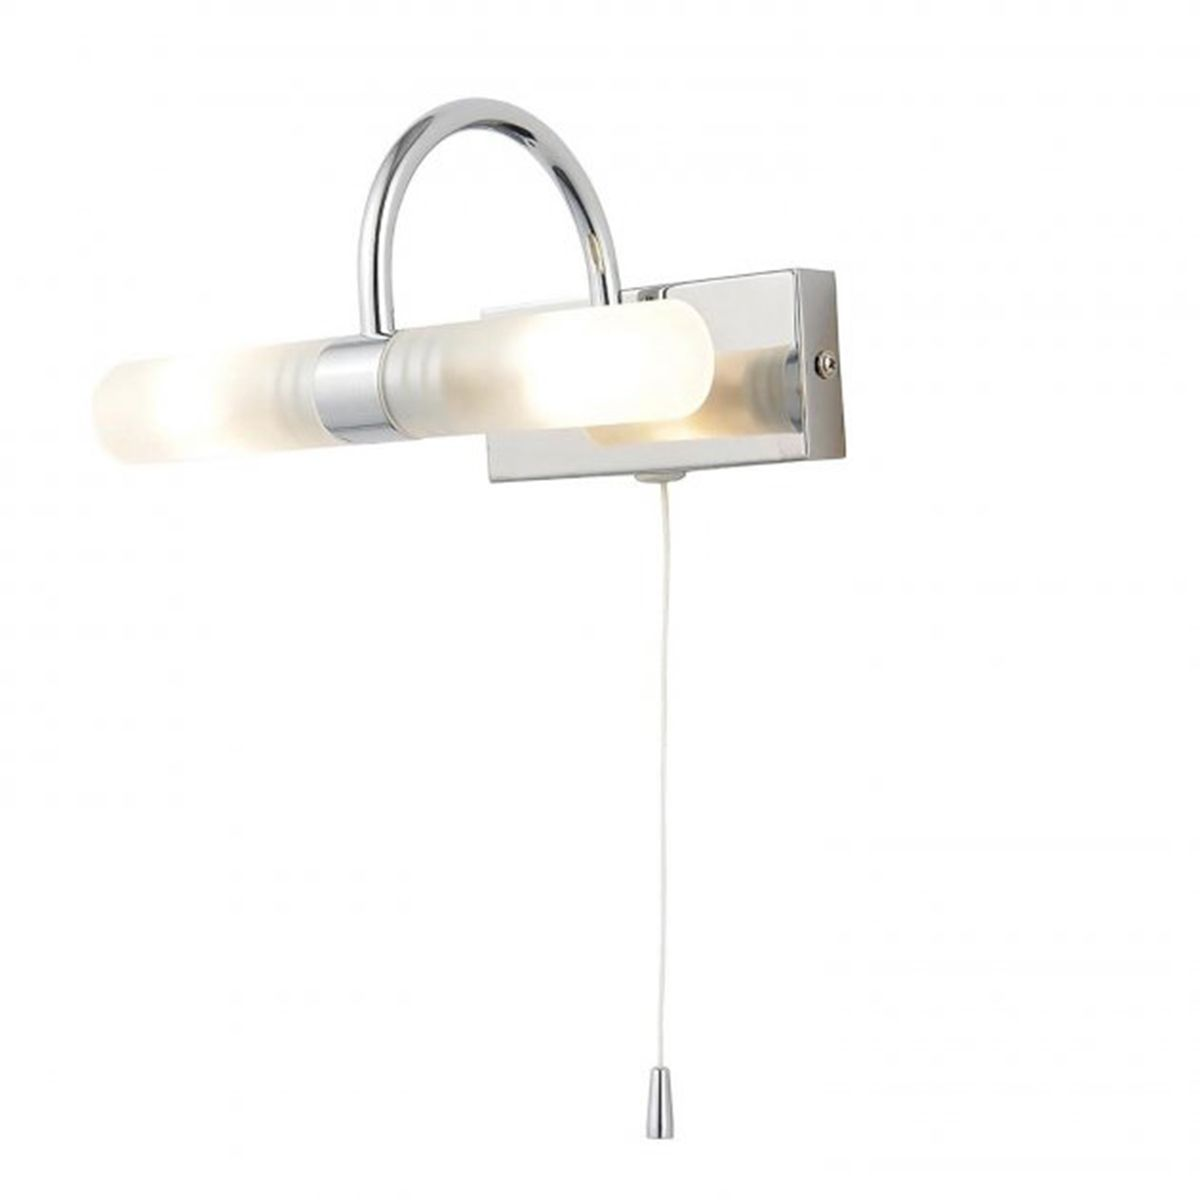 Frontline Chrome Curve Wall Light with Pull Cord 205mm